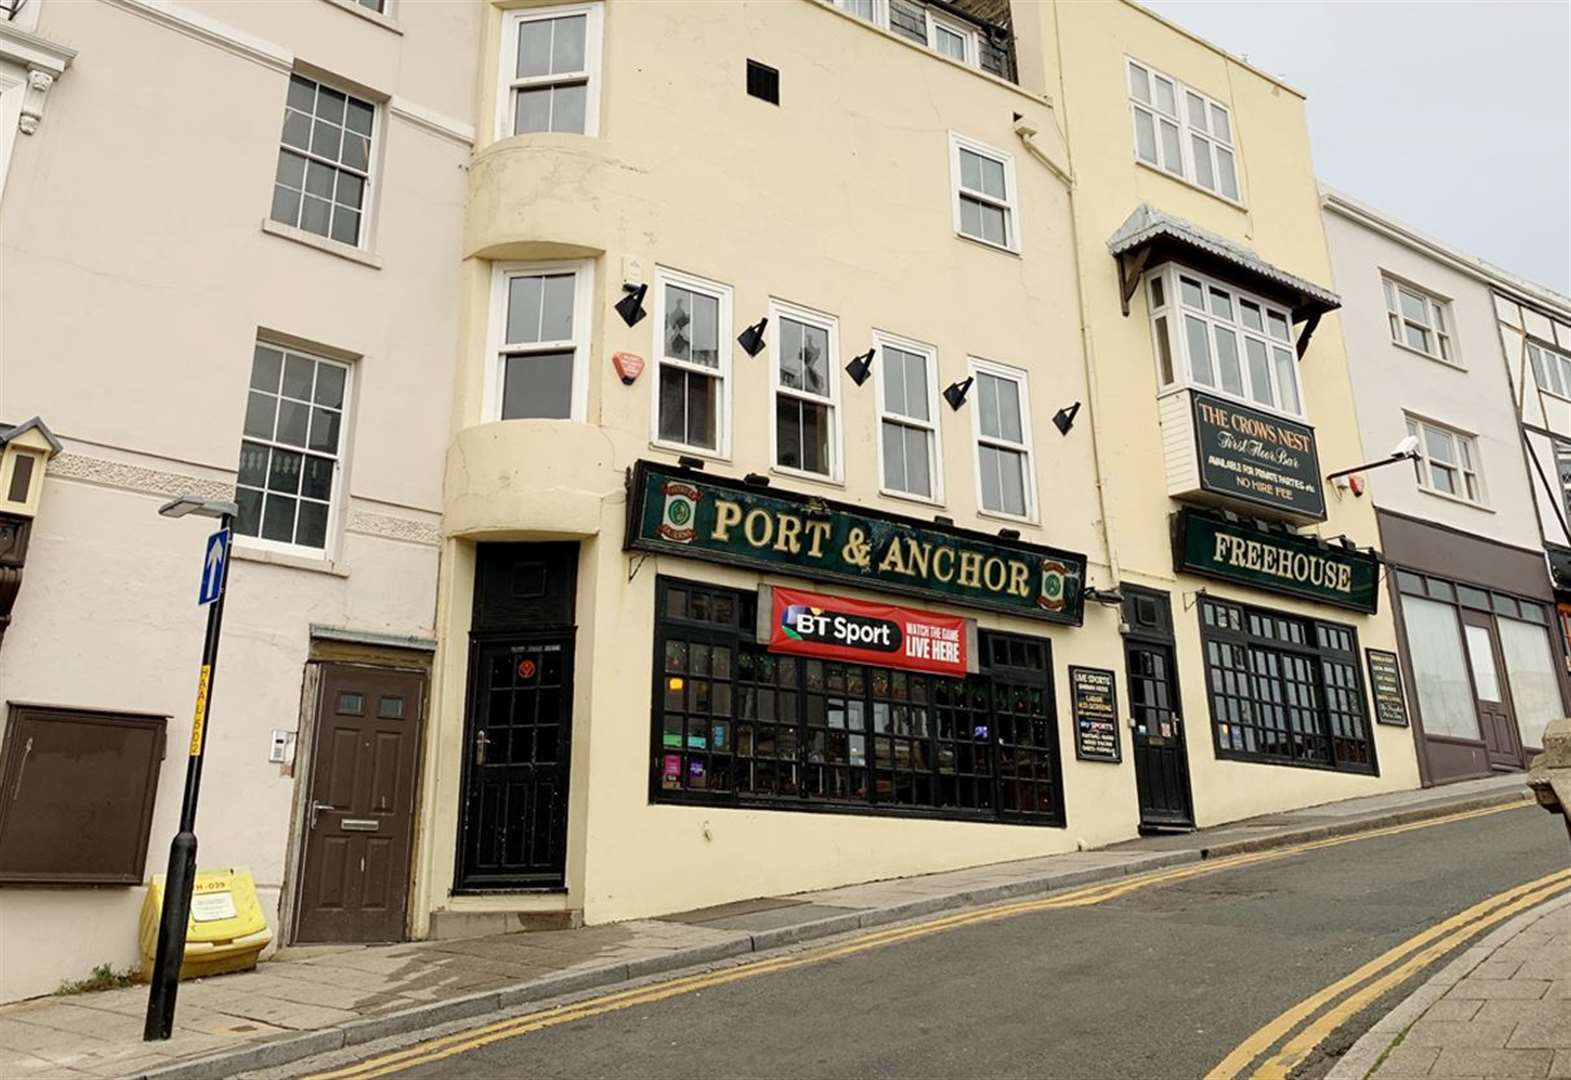 Pub with sea views up for sale